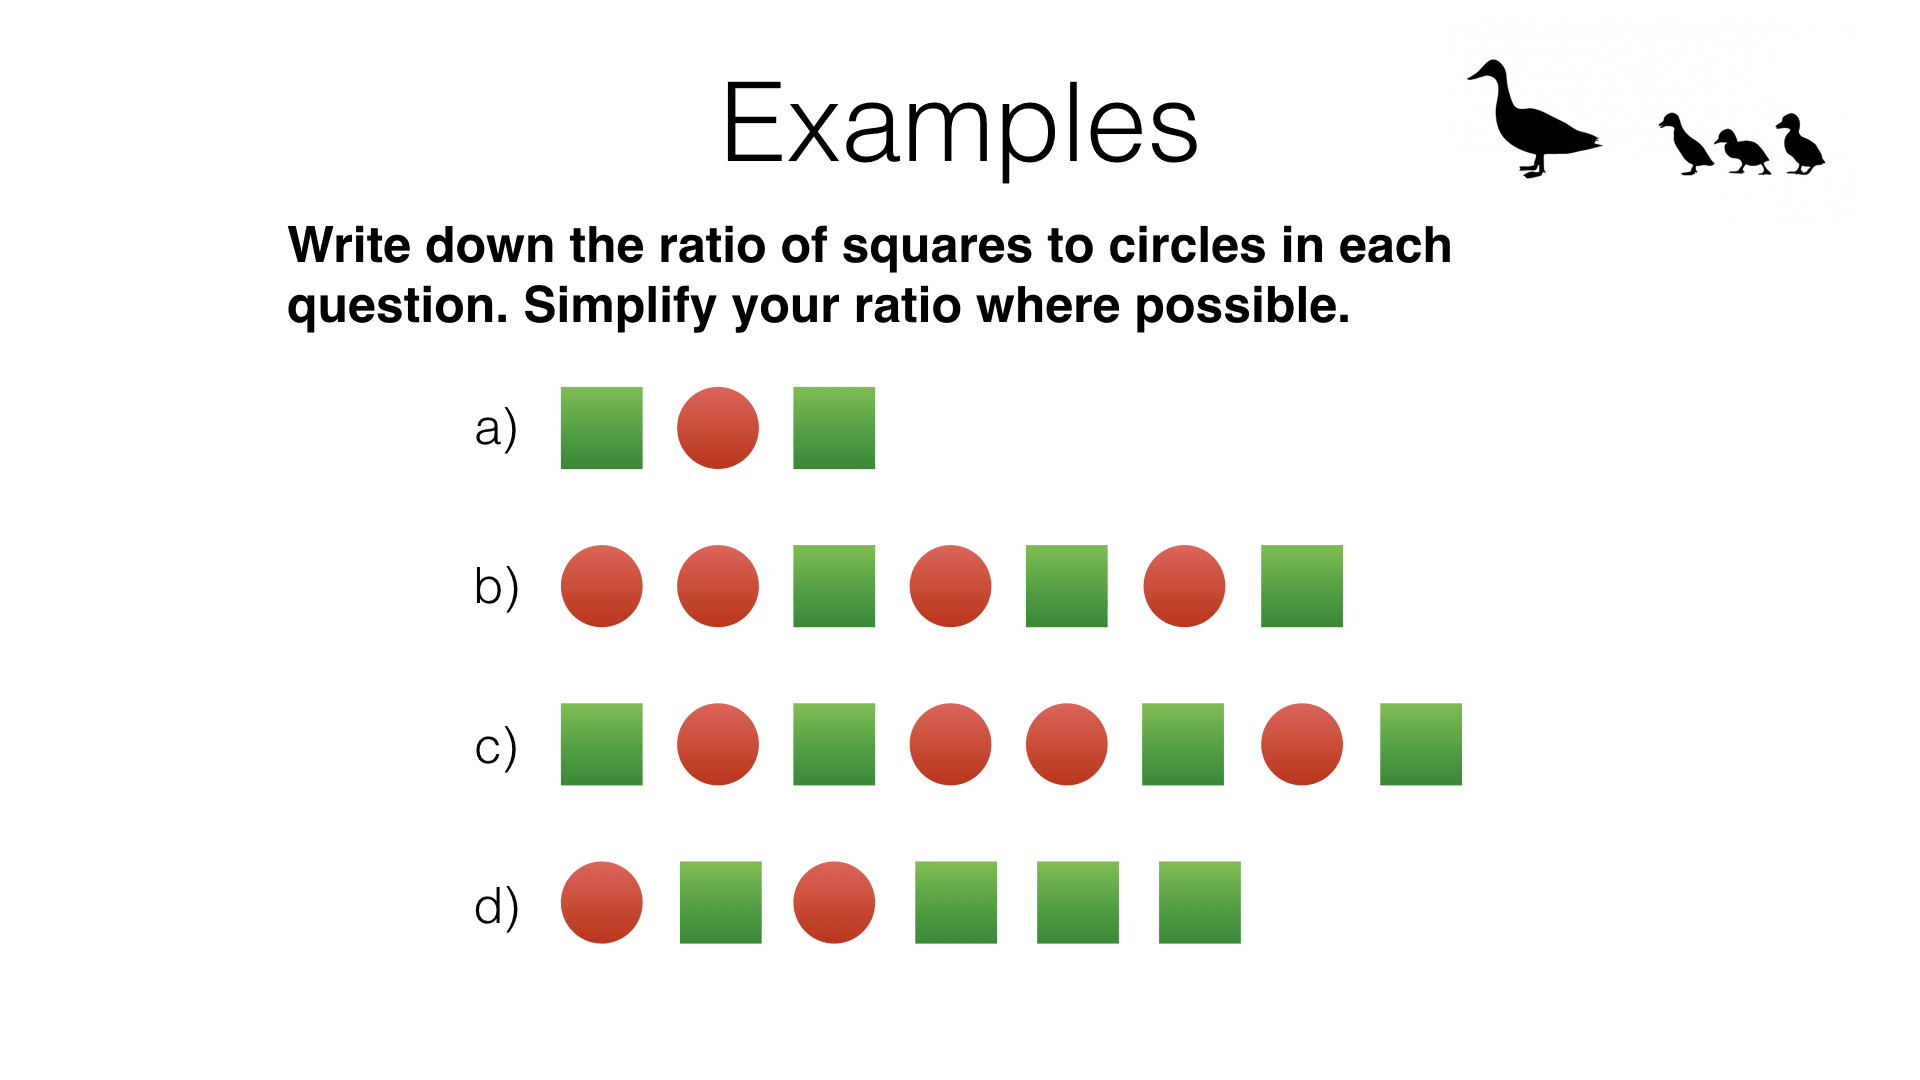 R4a Using Ratio Notation And Reducing Ratios To